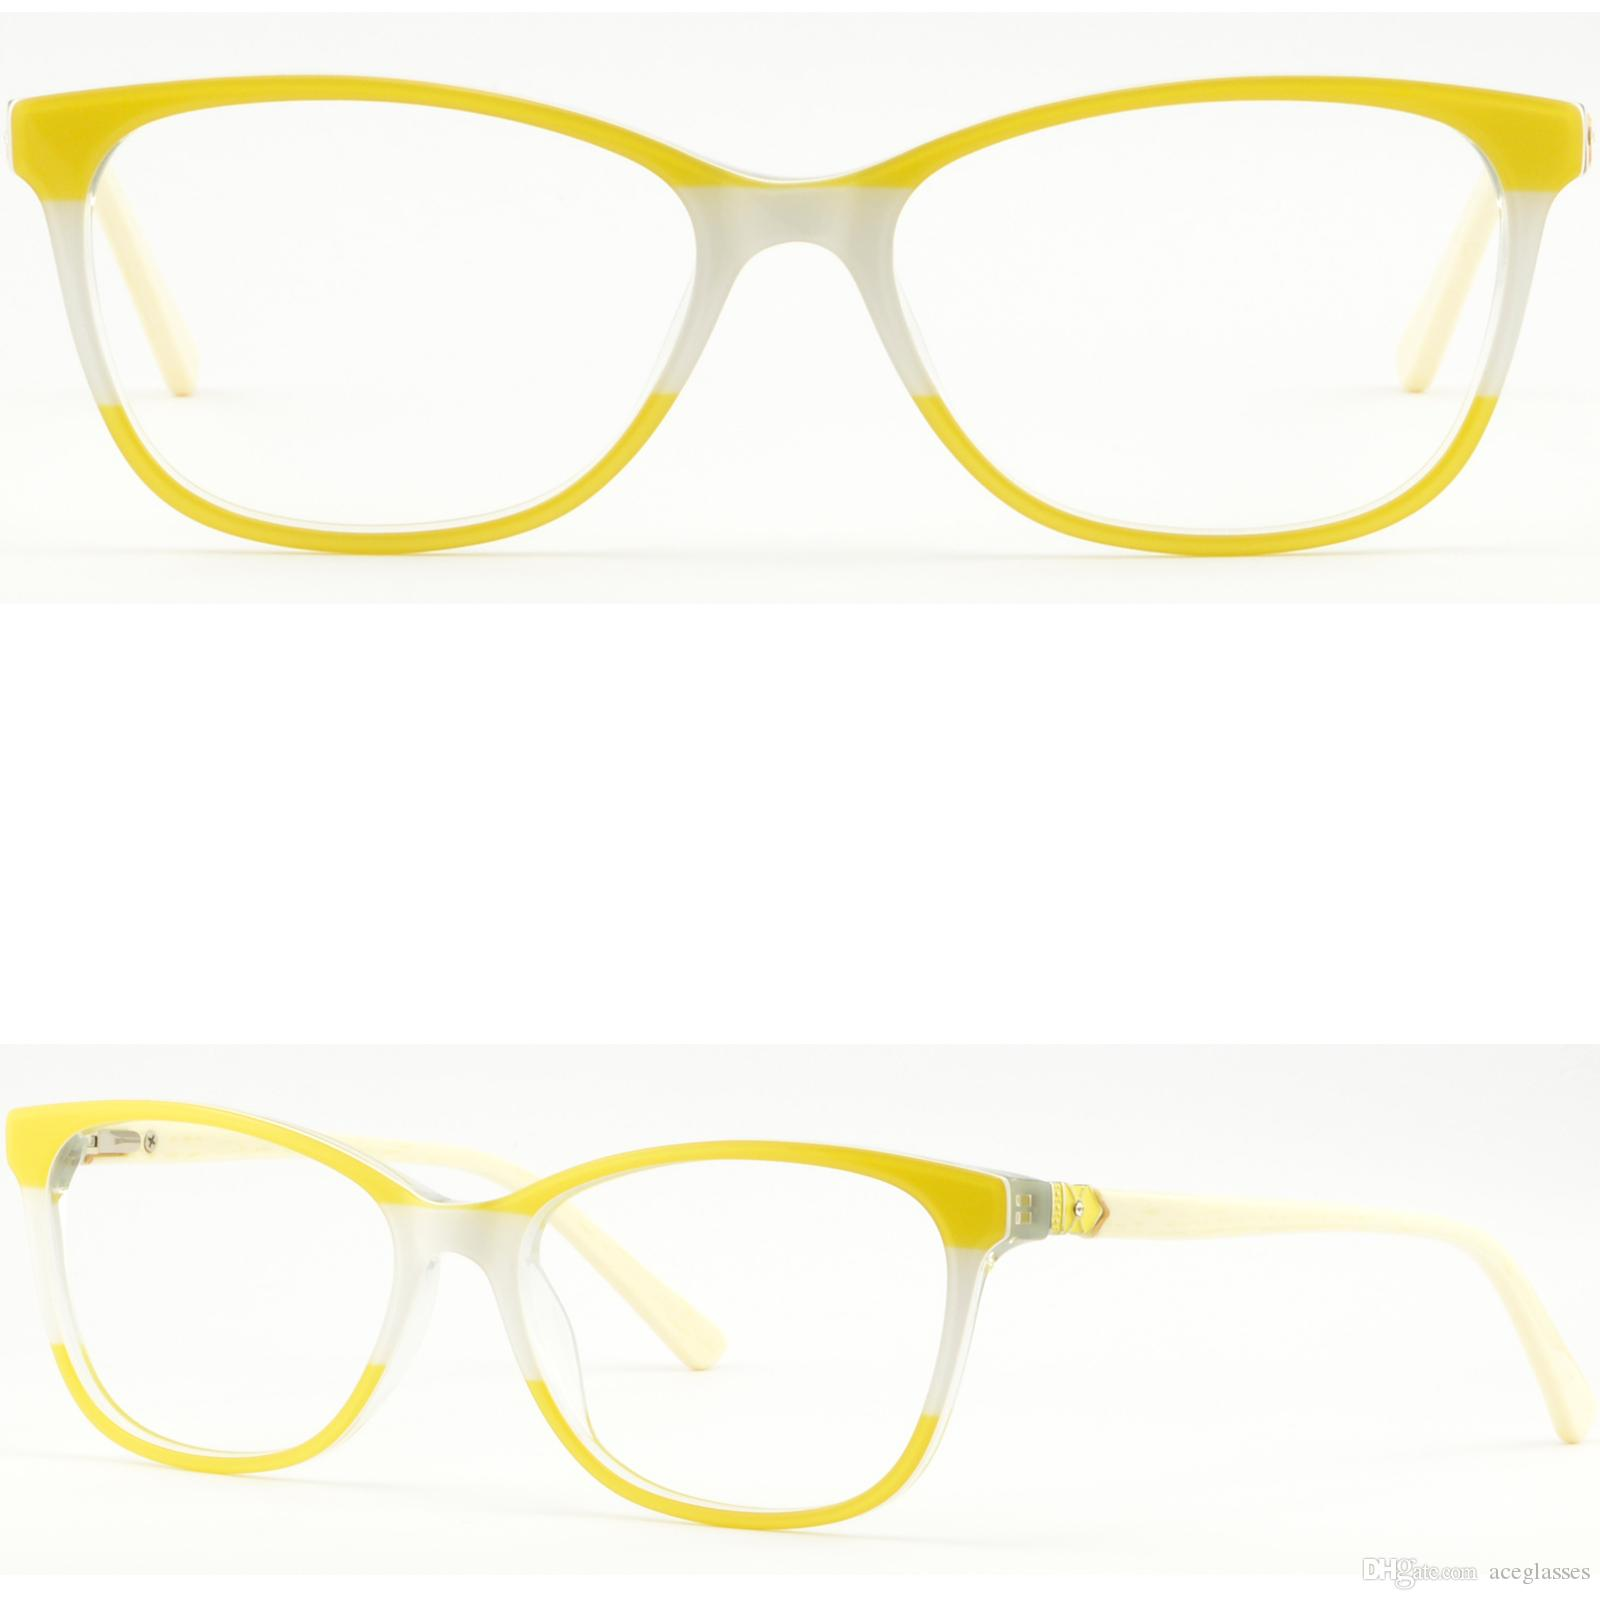 2b69b34814 Light Women Acetate Frame Spring Hinges Rectangle Prescription Eyeglasses  Yellow Eye Frames Online Eyeglass Frame Repair From Aceglasses